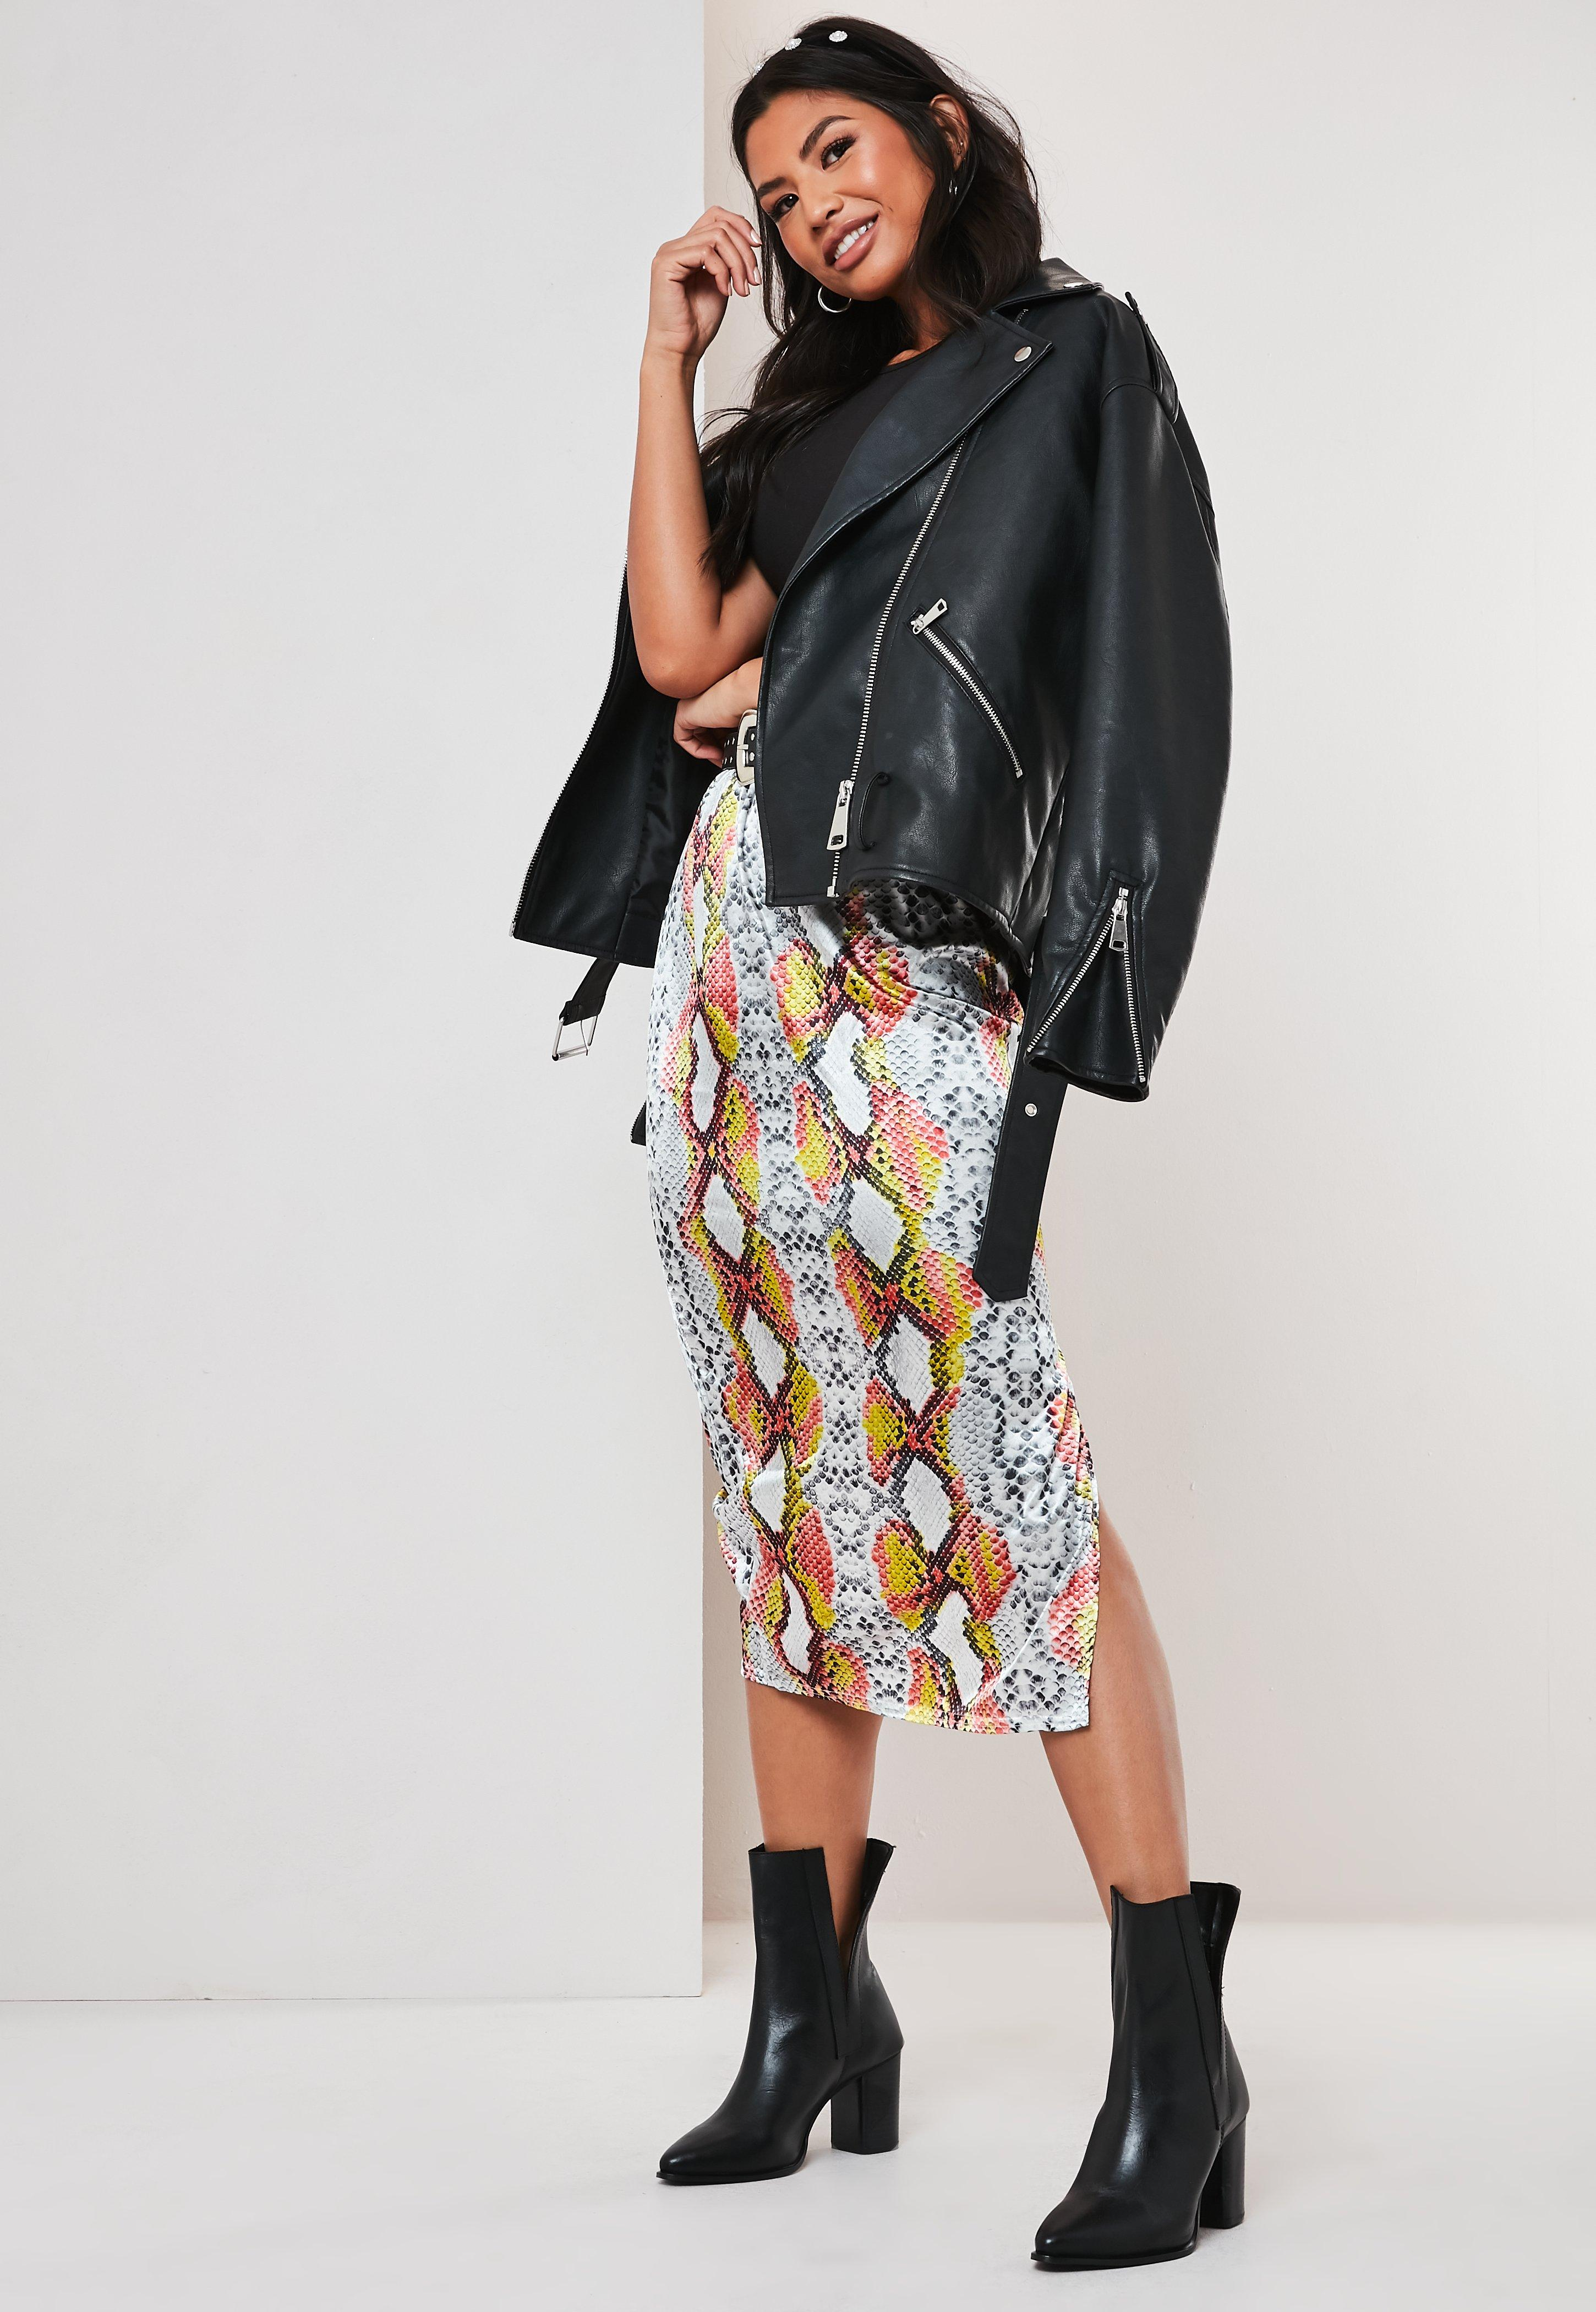 a70f6027a7 Skirts | Winter Skirts for Women Online UK - Missguided